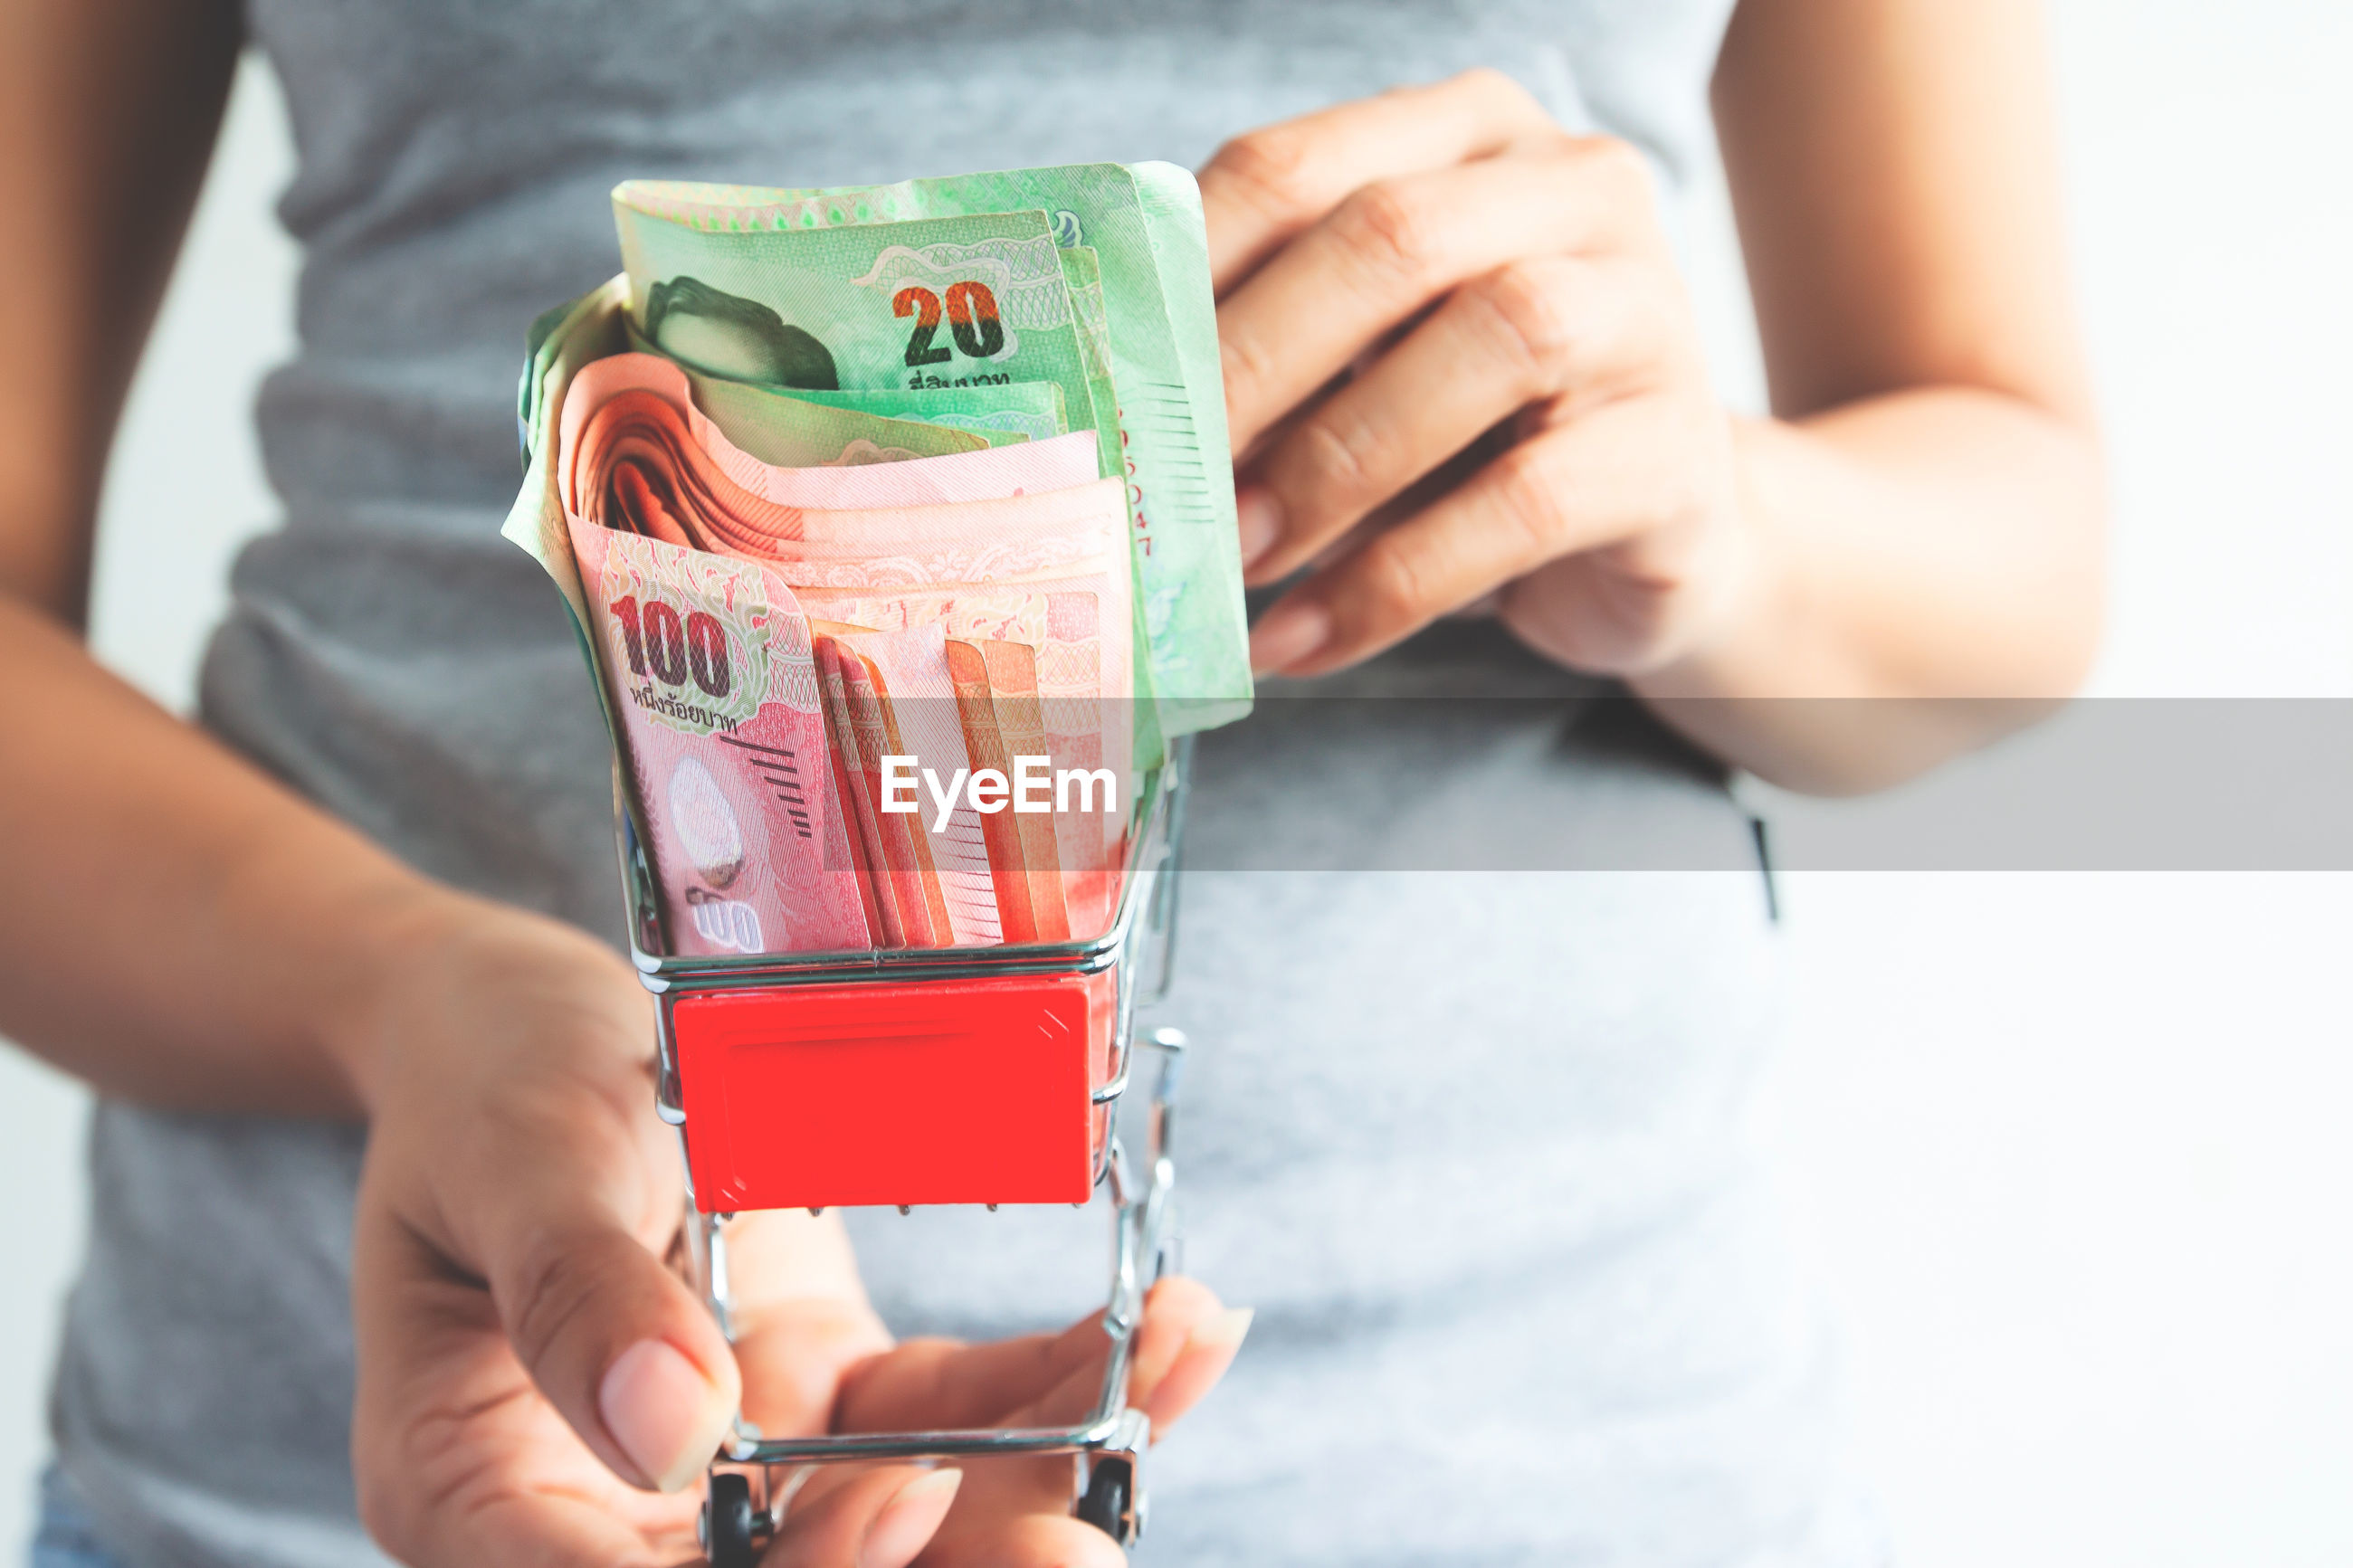 Midsection of woman holding currency in miniature shopping cart against white background